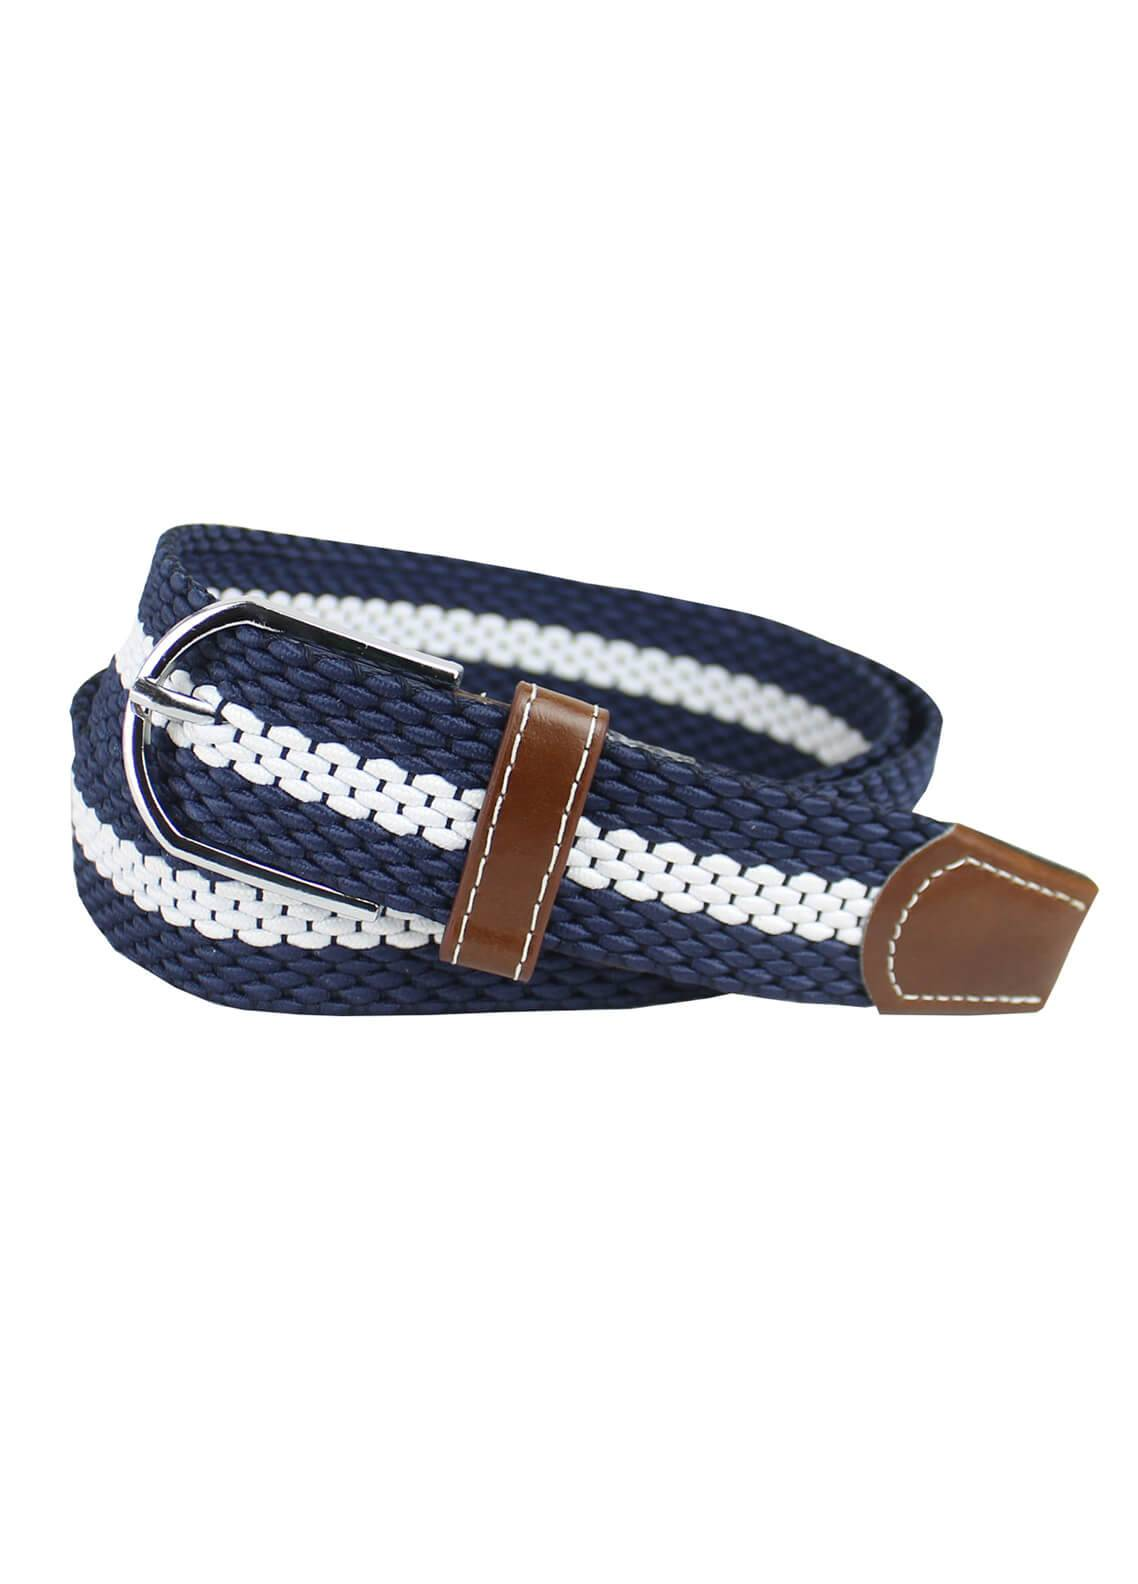 Shahzeb Saeed Textured Leather Men Belts BELT-134 Navy Blue & White - Casual Accessories